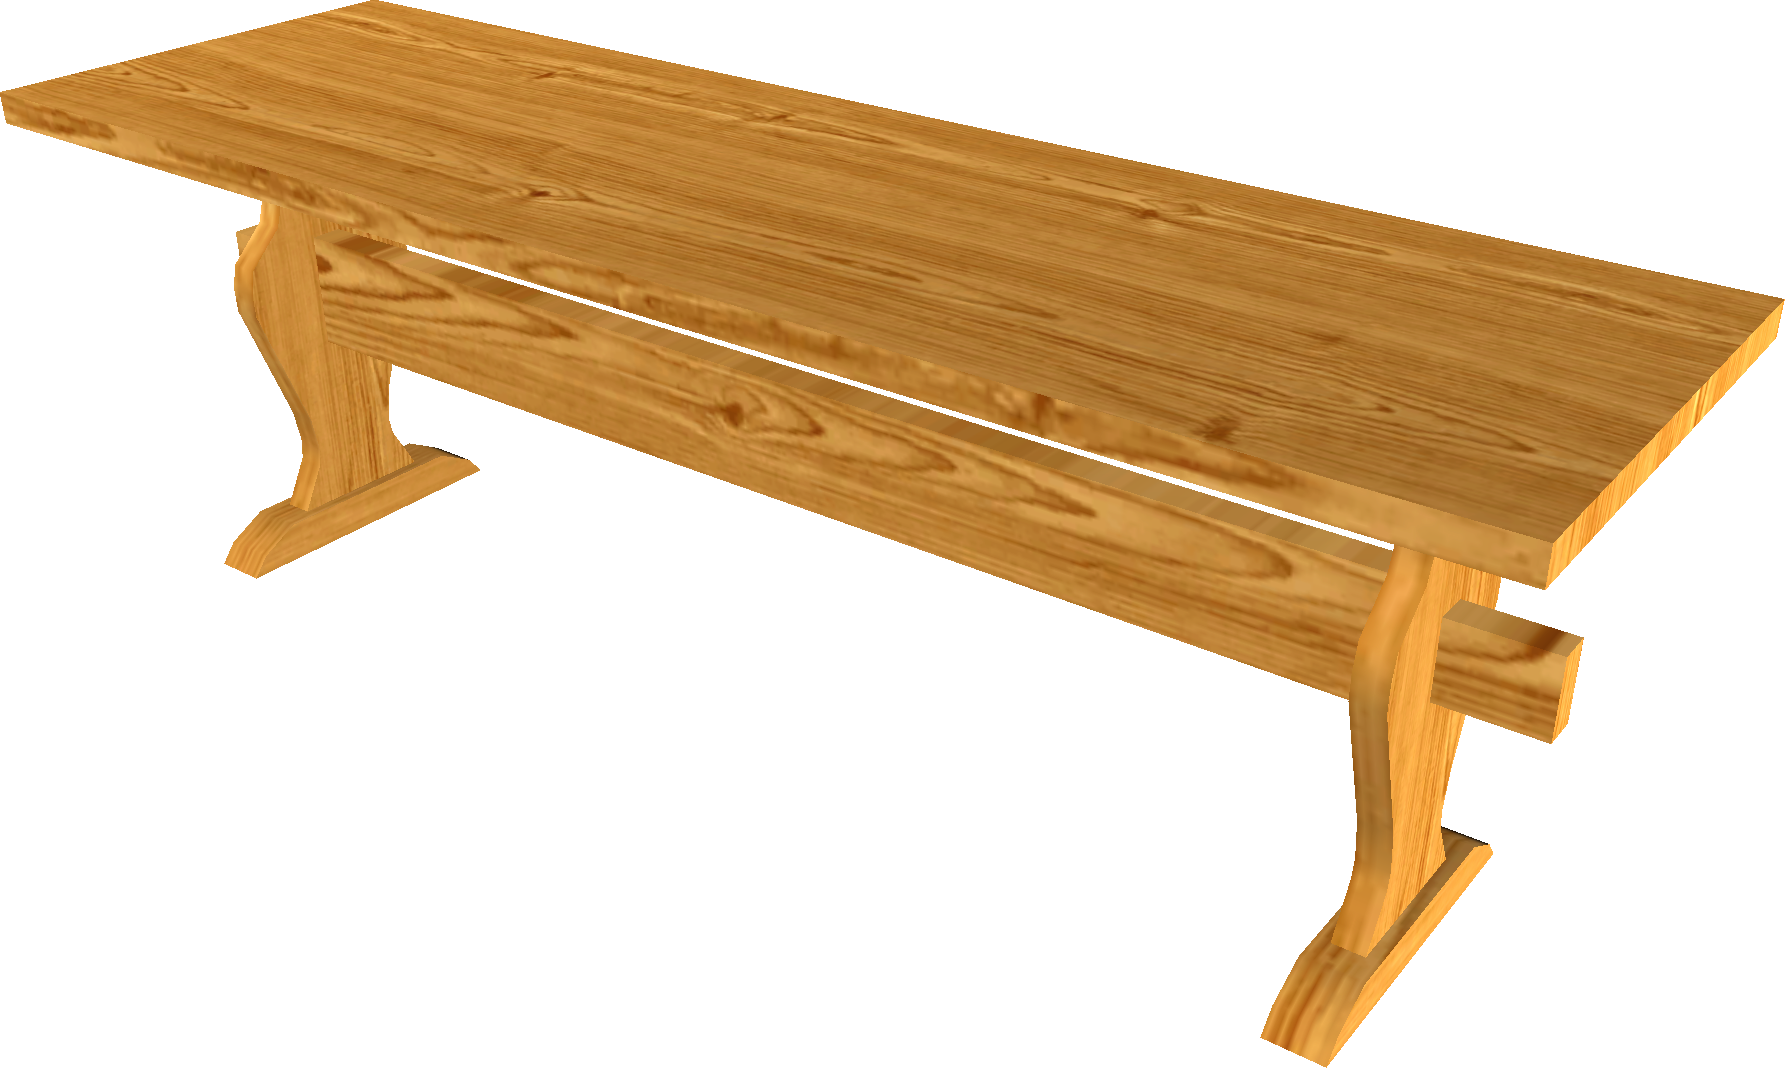 Bench clipart banch. Hd png transparent image